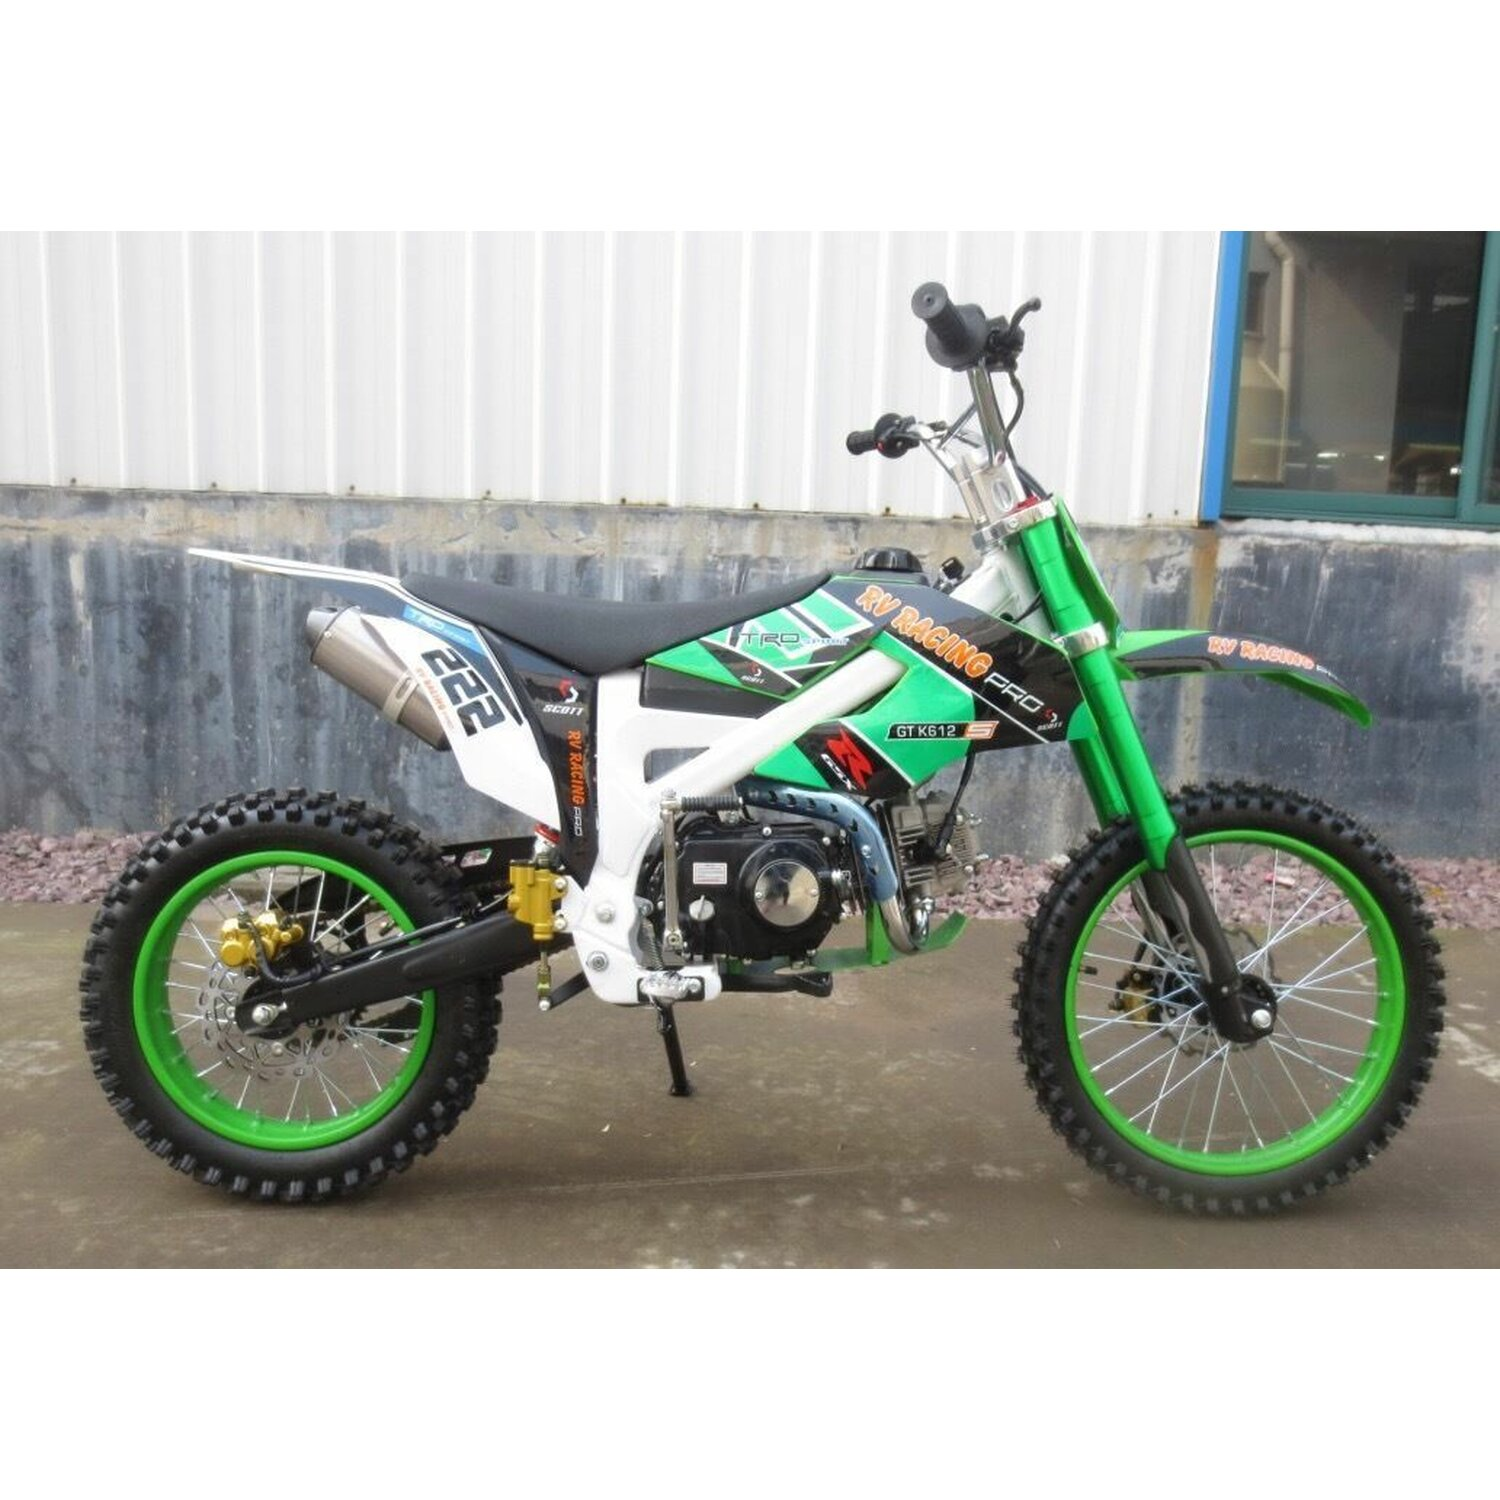 125ccm dirtbike pitbike 125cc 4takt 4 gang 17 14 zoll gr n. Black Bedroom Furniture Sets. Home Design Ideas